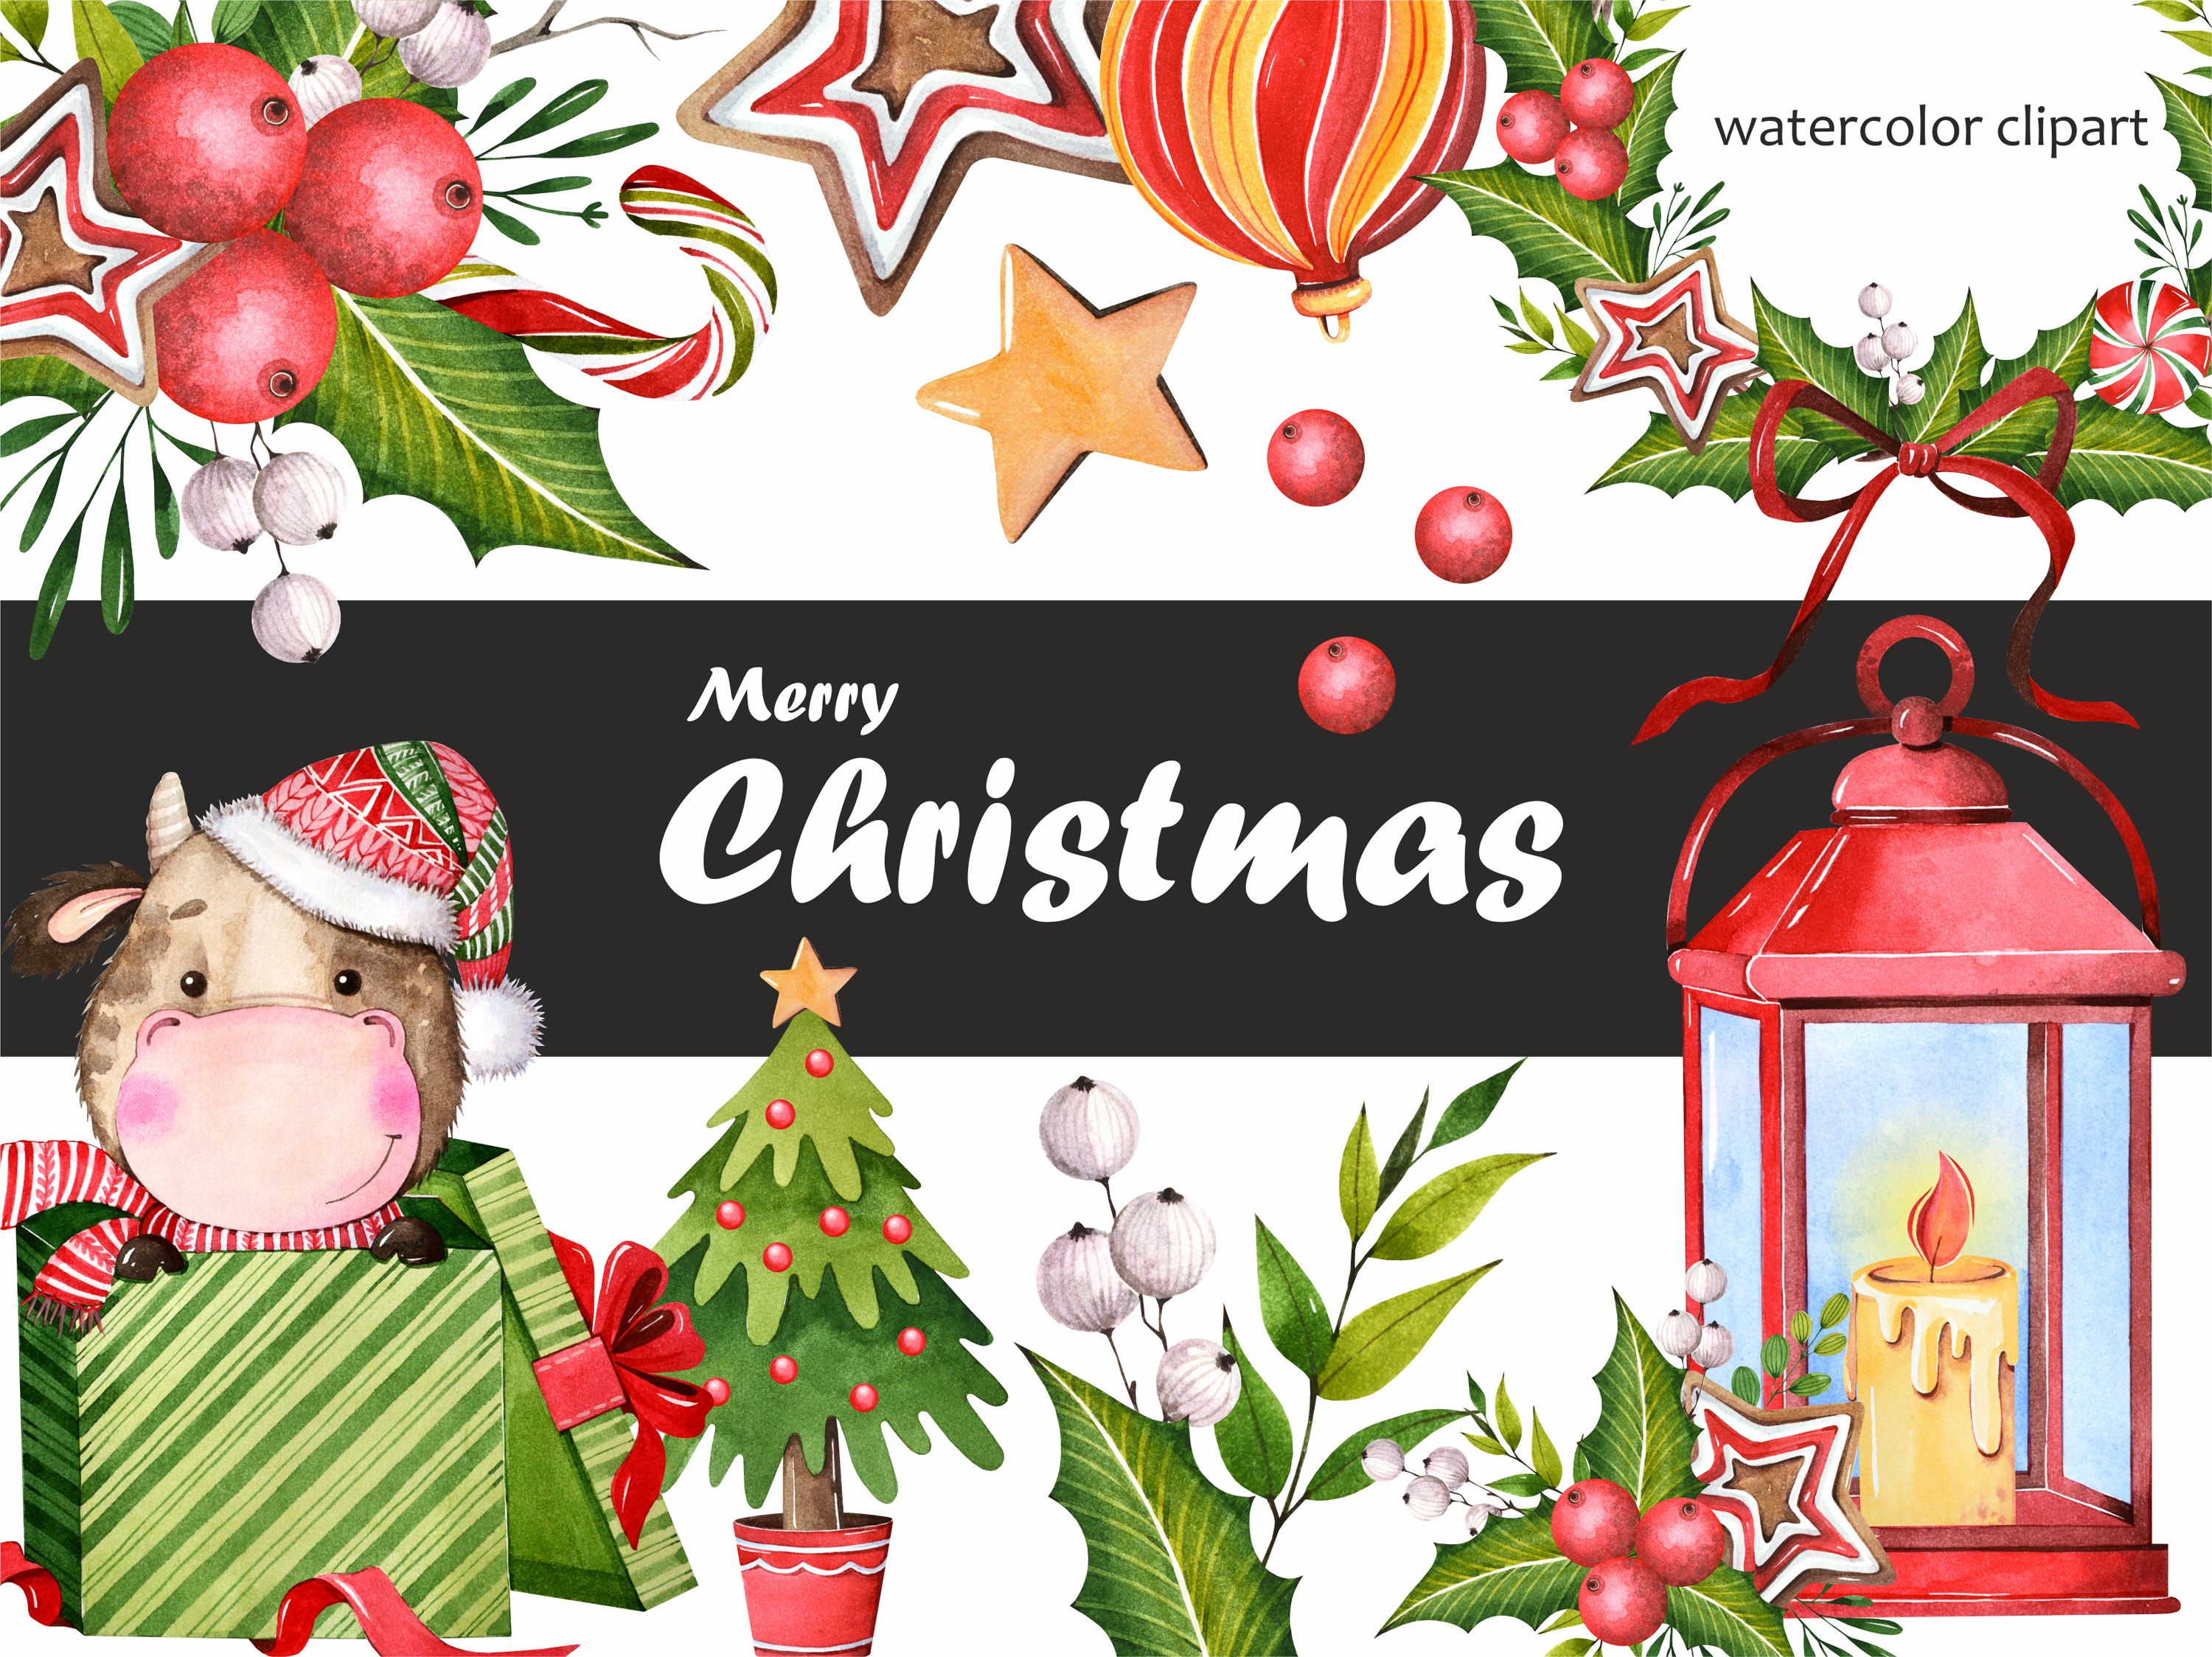 Watercolor clipart. Christmas wreath. Symbol of the year ...